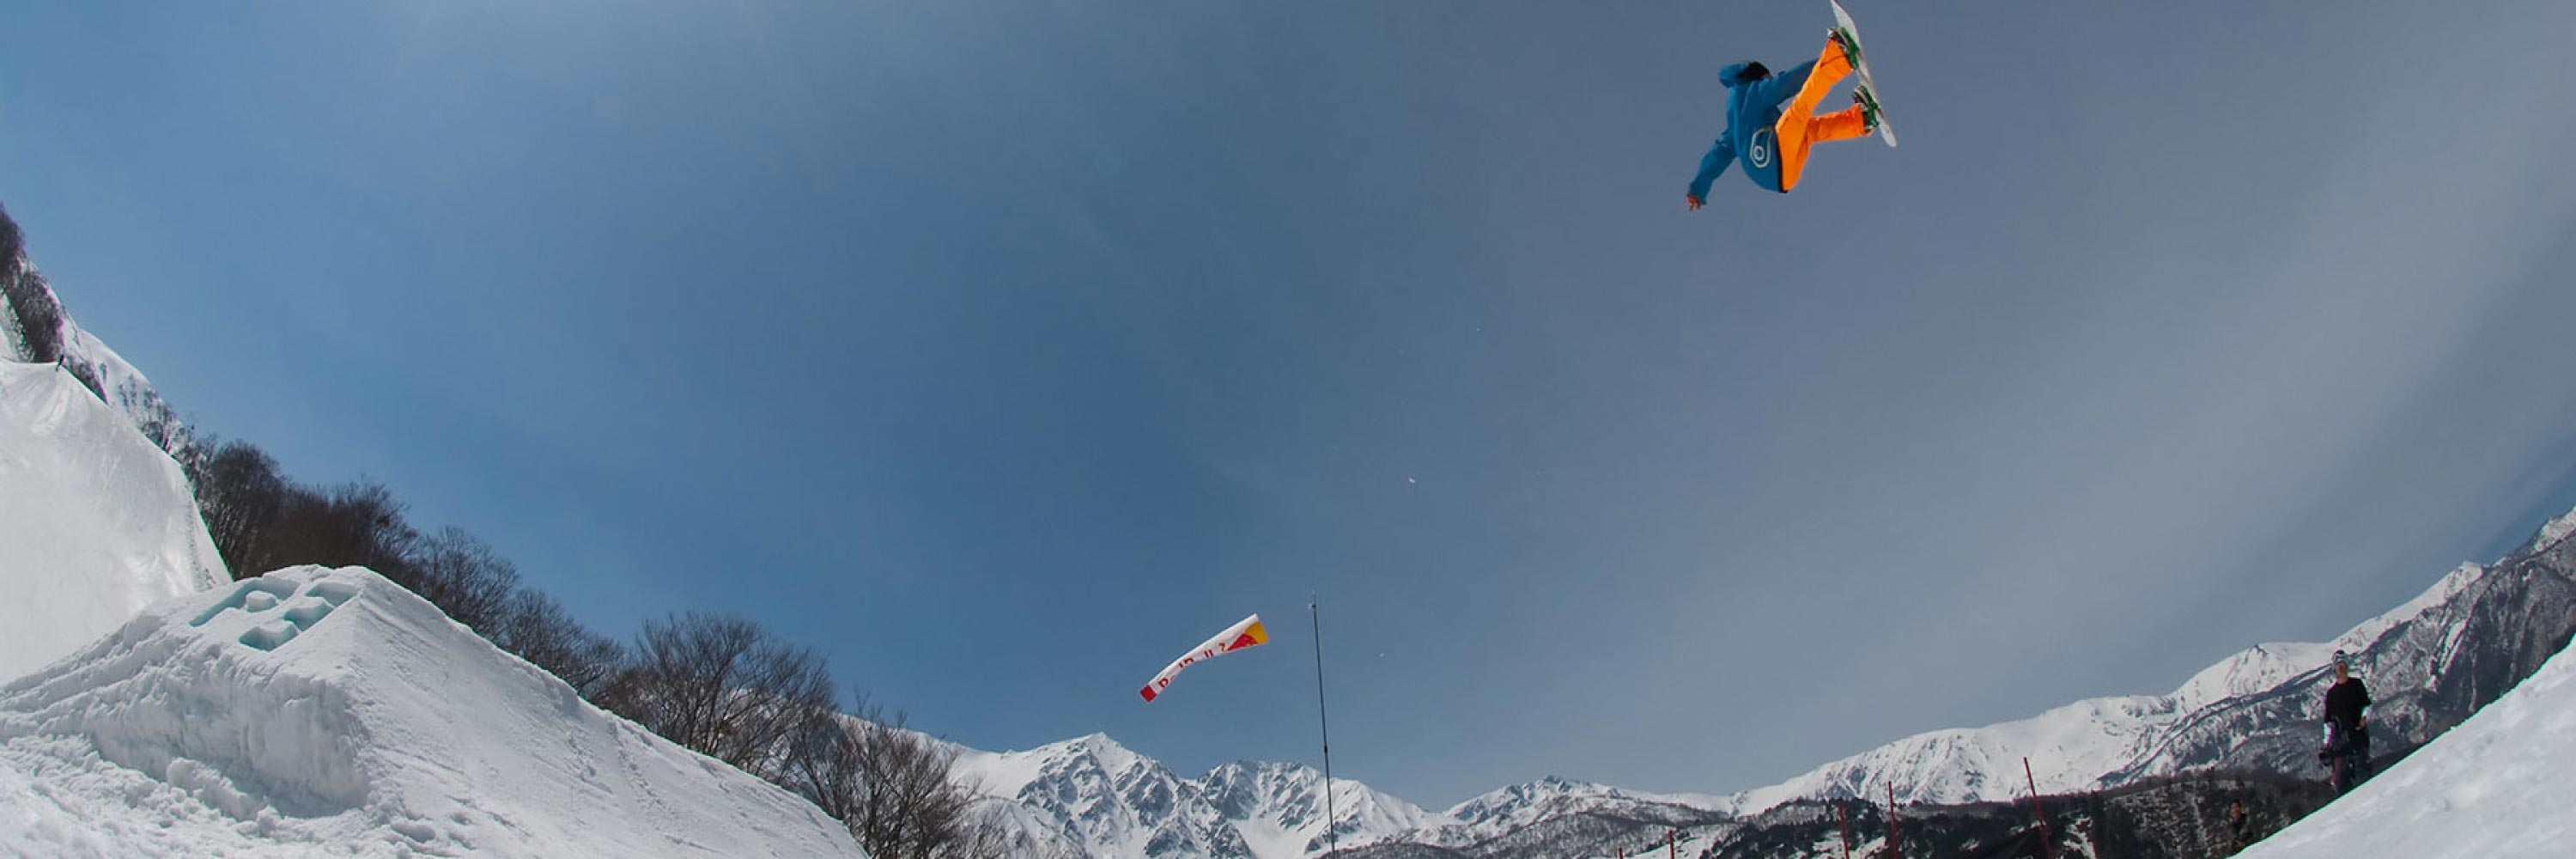 getting air snowboarding in hakuba